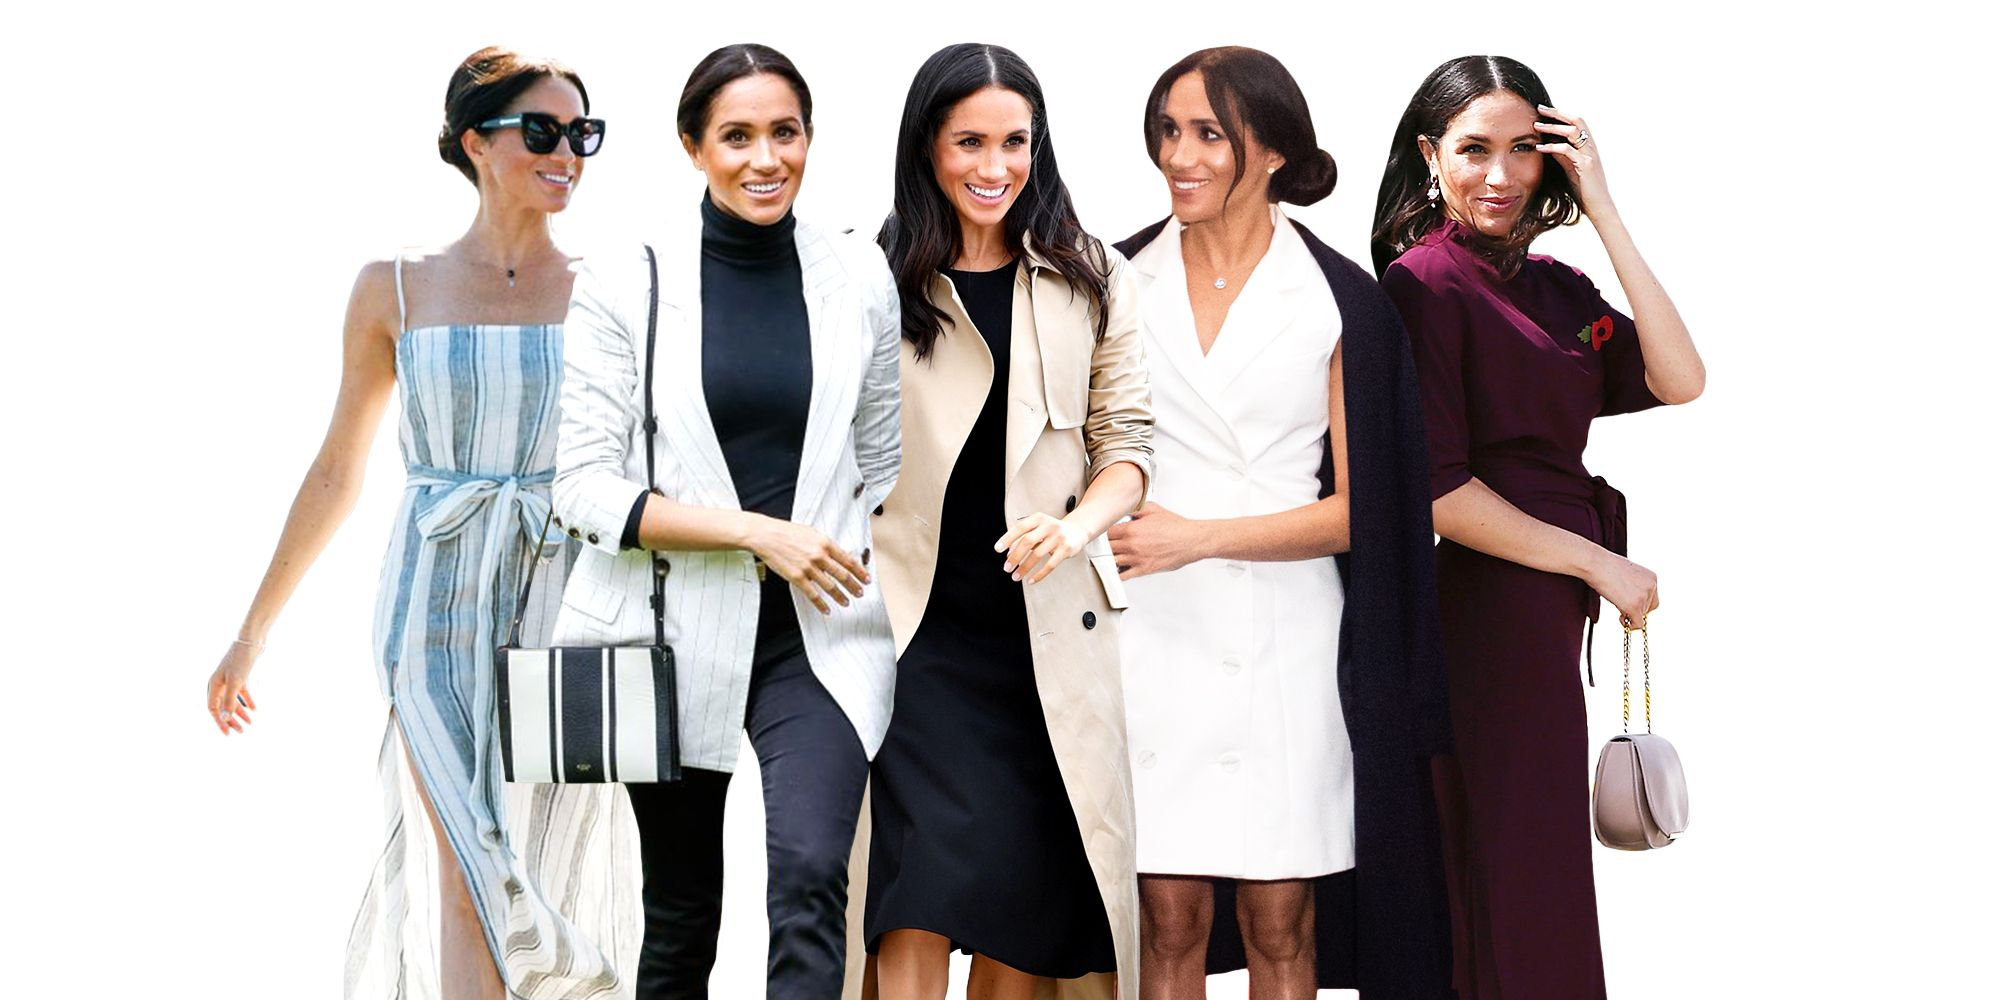 elle.com - Kate Storey - Meghan Markle Sustainable Fashion Impact